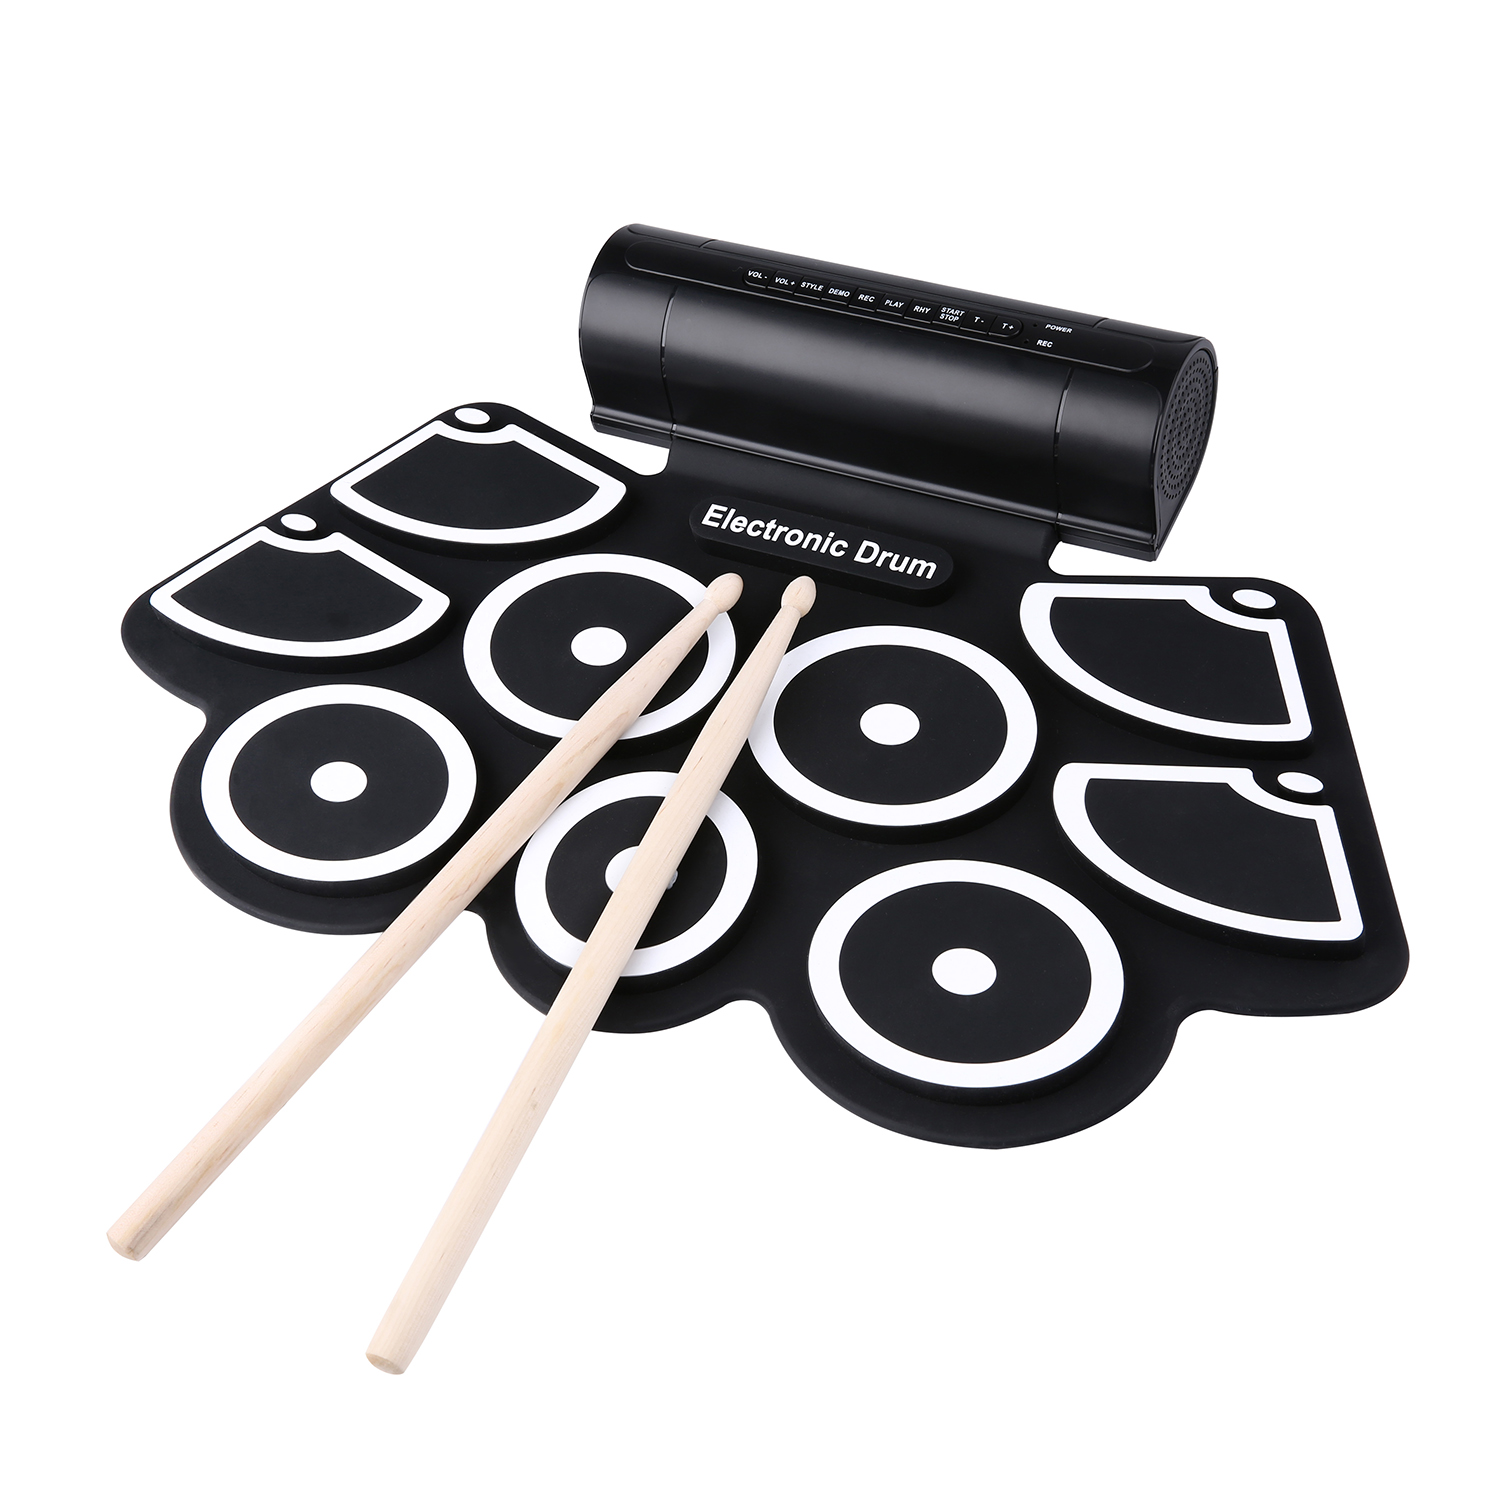 new portable roll up electronic usb midi drum set kits 9 pads built in speakers foot pedals. Black Bedroom Furniture Sets. Home Design Ideas